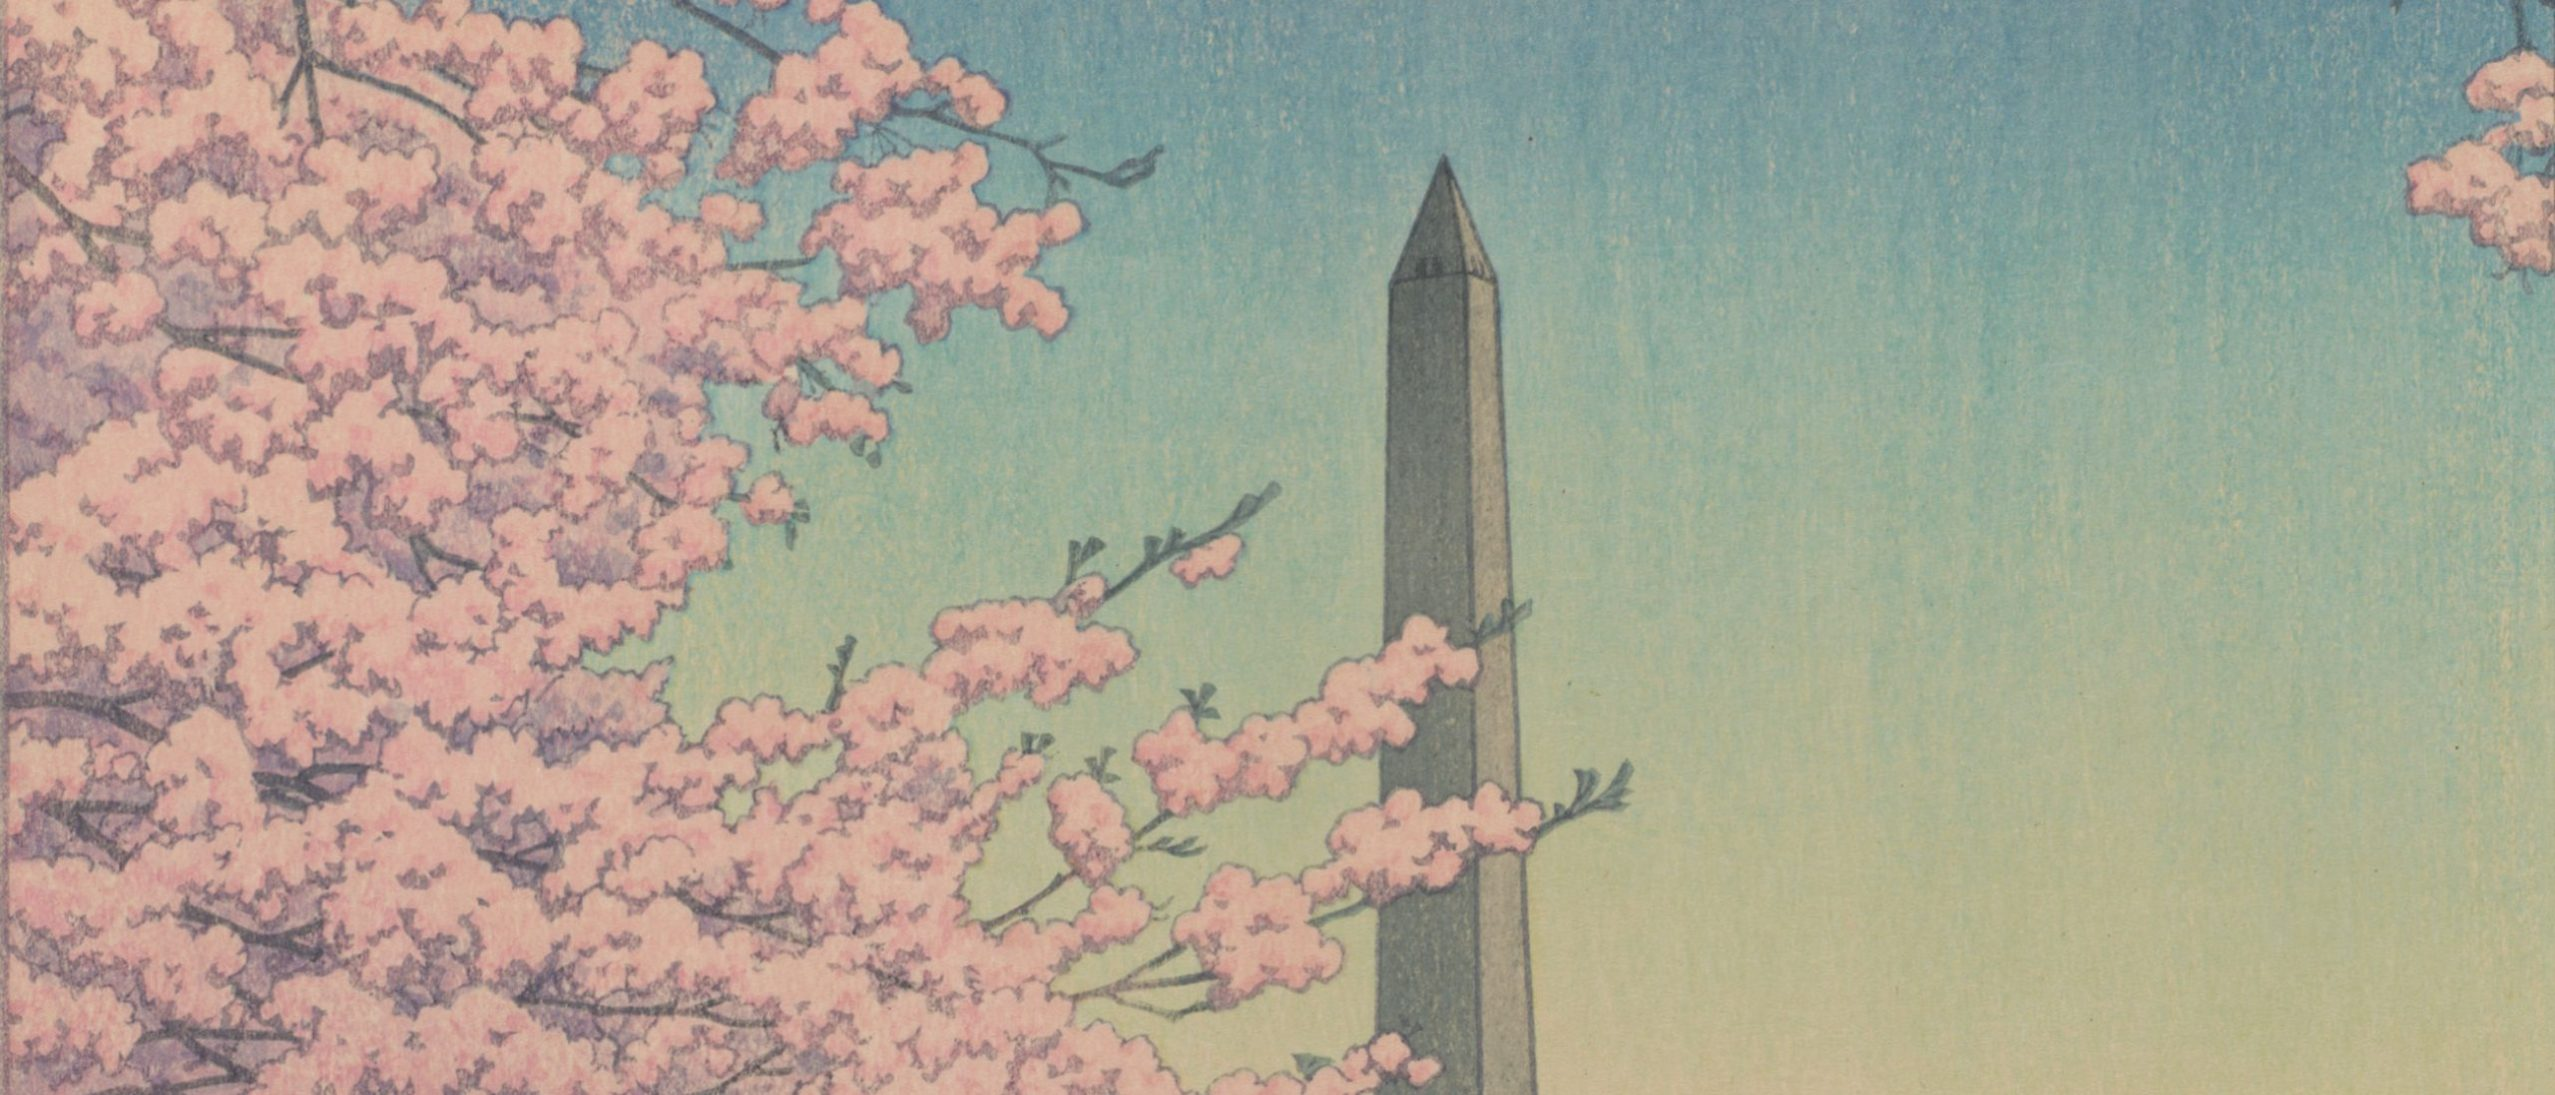 detail from a woodblock print, showing the washington monument glimpsed between pink flowering branches